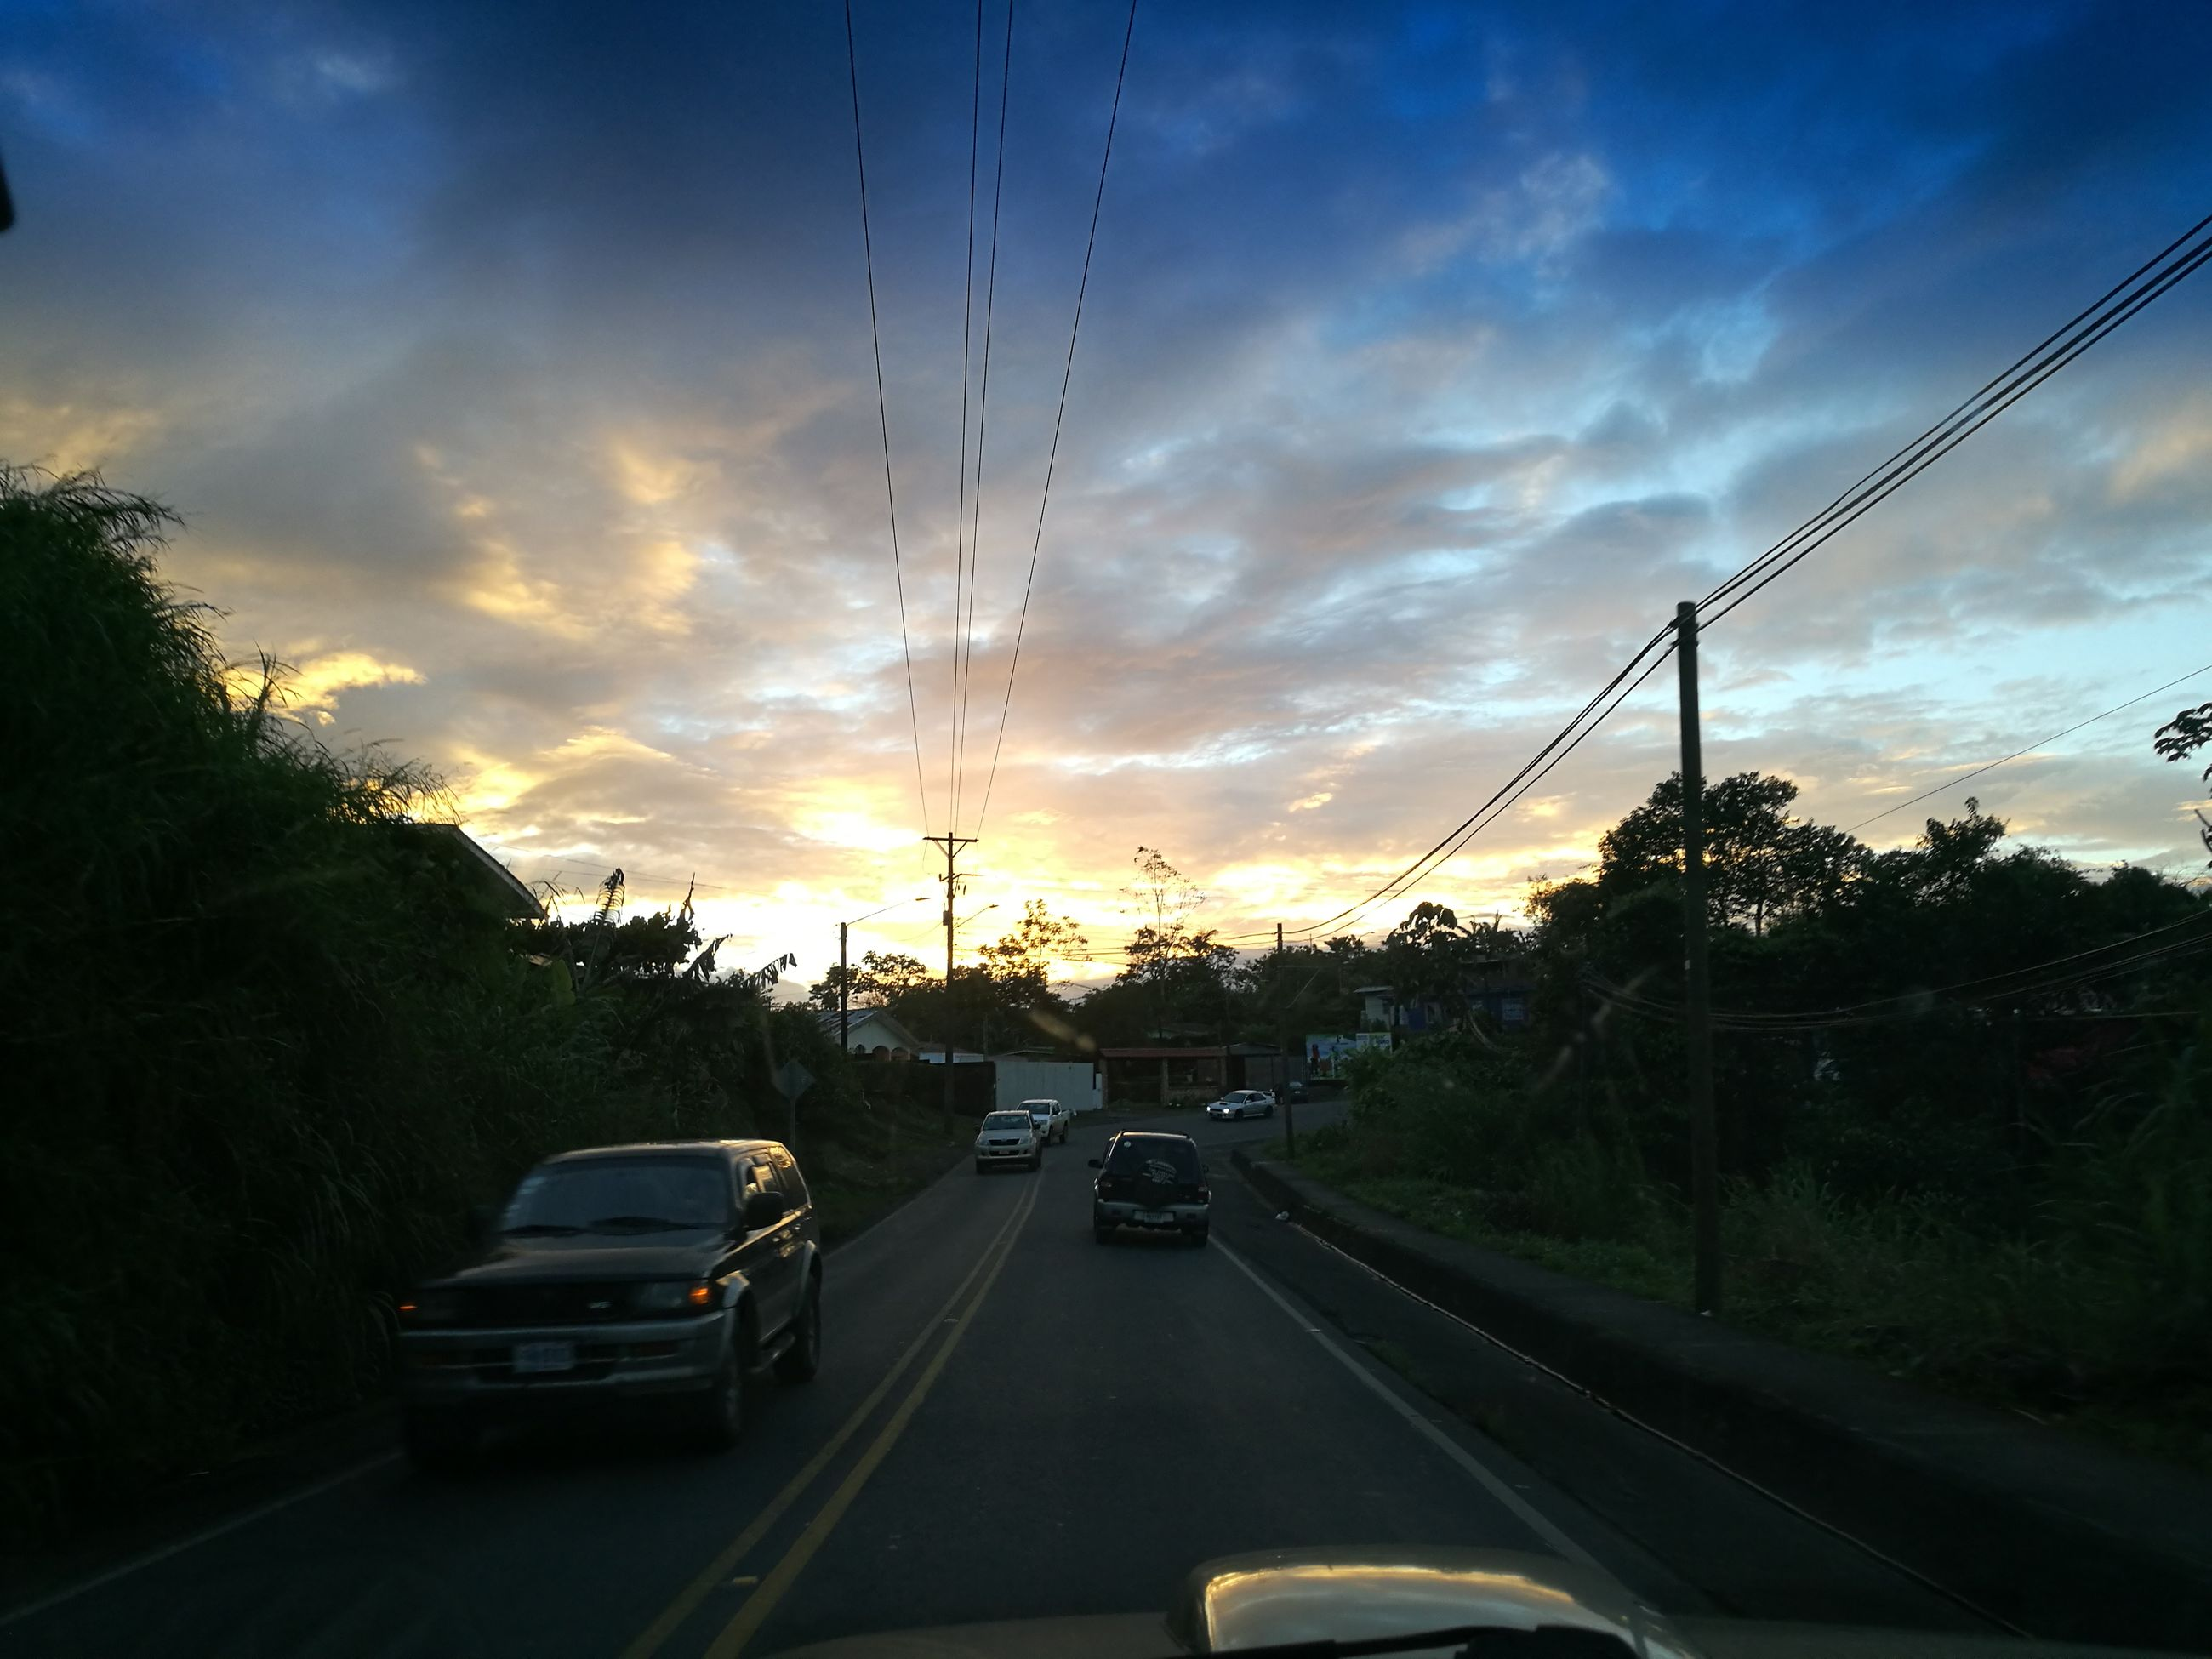 car, transportation, sunset, tree, road, mode of transport, sky, the way forward, street, land vehicle, traffic, cloud - sky, no people, palm tree, city, outdoors, nature, architecture, day